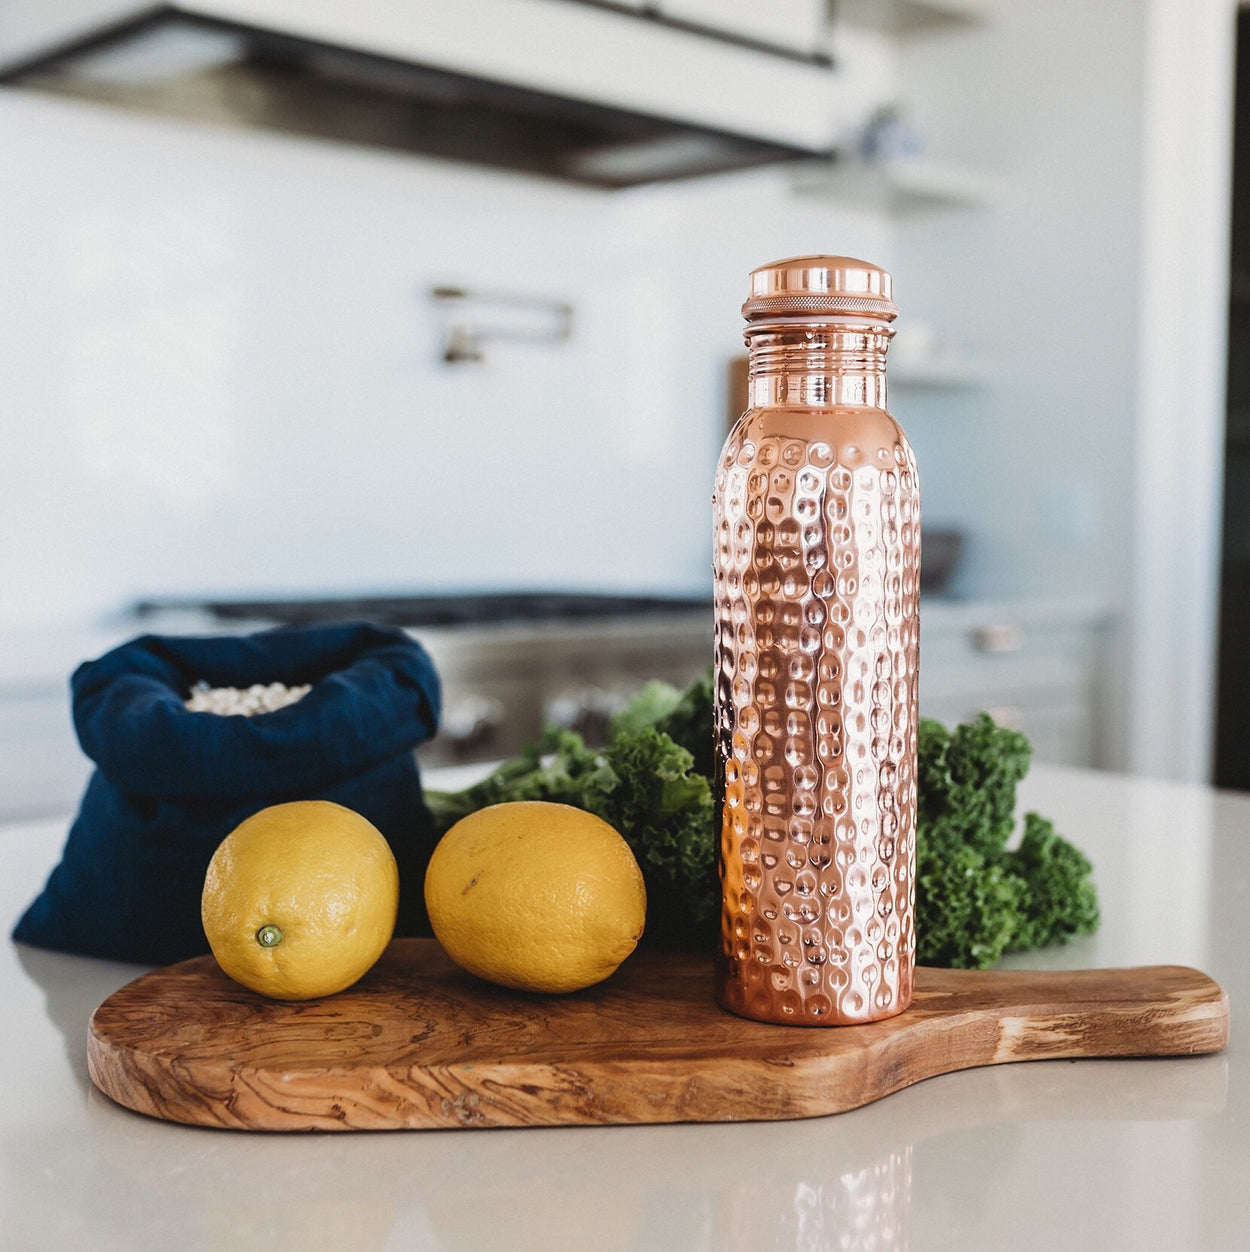 The Better Farm Co's sustinable copper water bottle is placed on top of a counter, the perfect water bottle for an eco-friendly grocery run. Copper has many benefits. including  ayurvedic healing, increasing immunity, aiding in gut health, increasing metabolism, providing arthritic support and improving digestion.